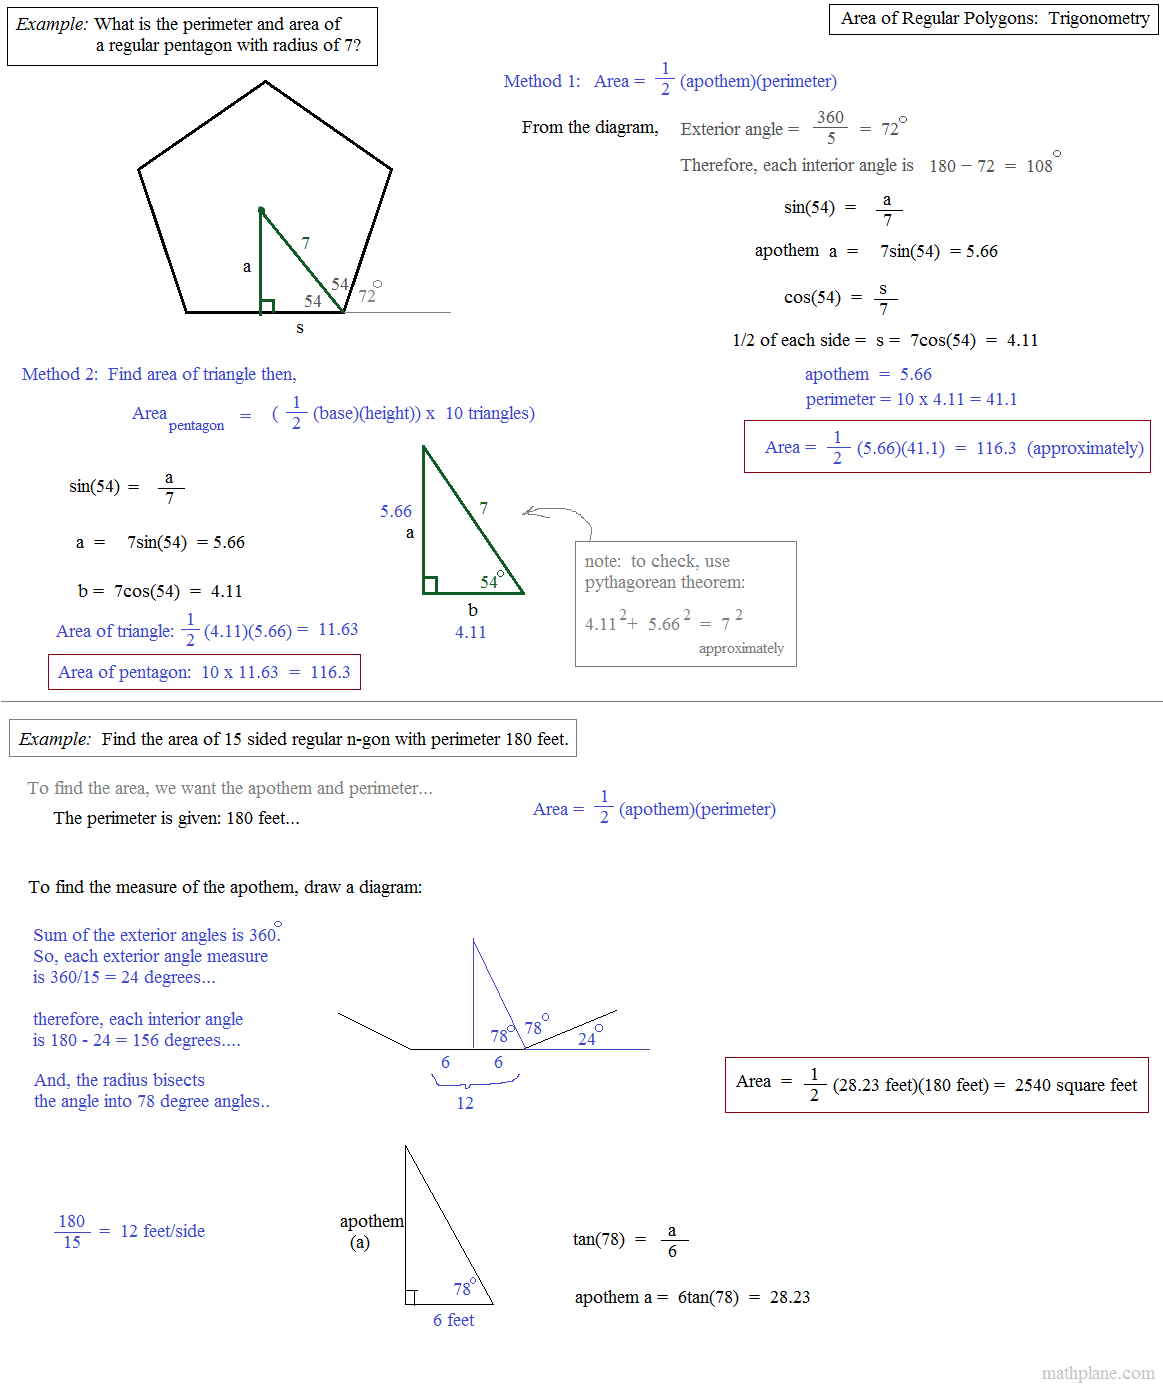 worksheet Areas Of Polygons Worksheet math plane area and perimeter of polygons 2 regular trigonometry